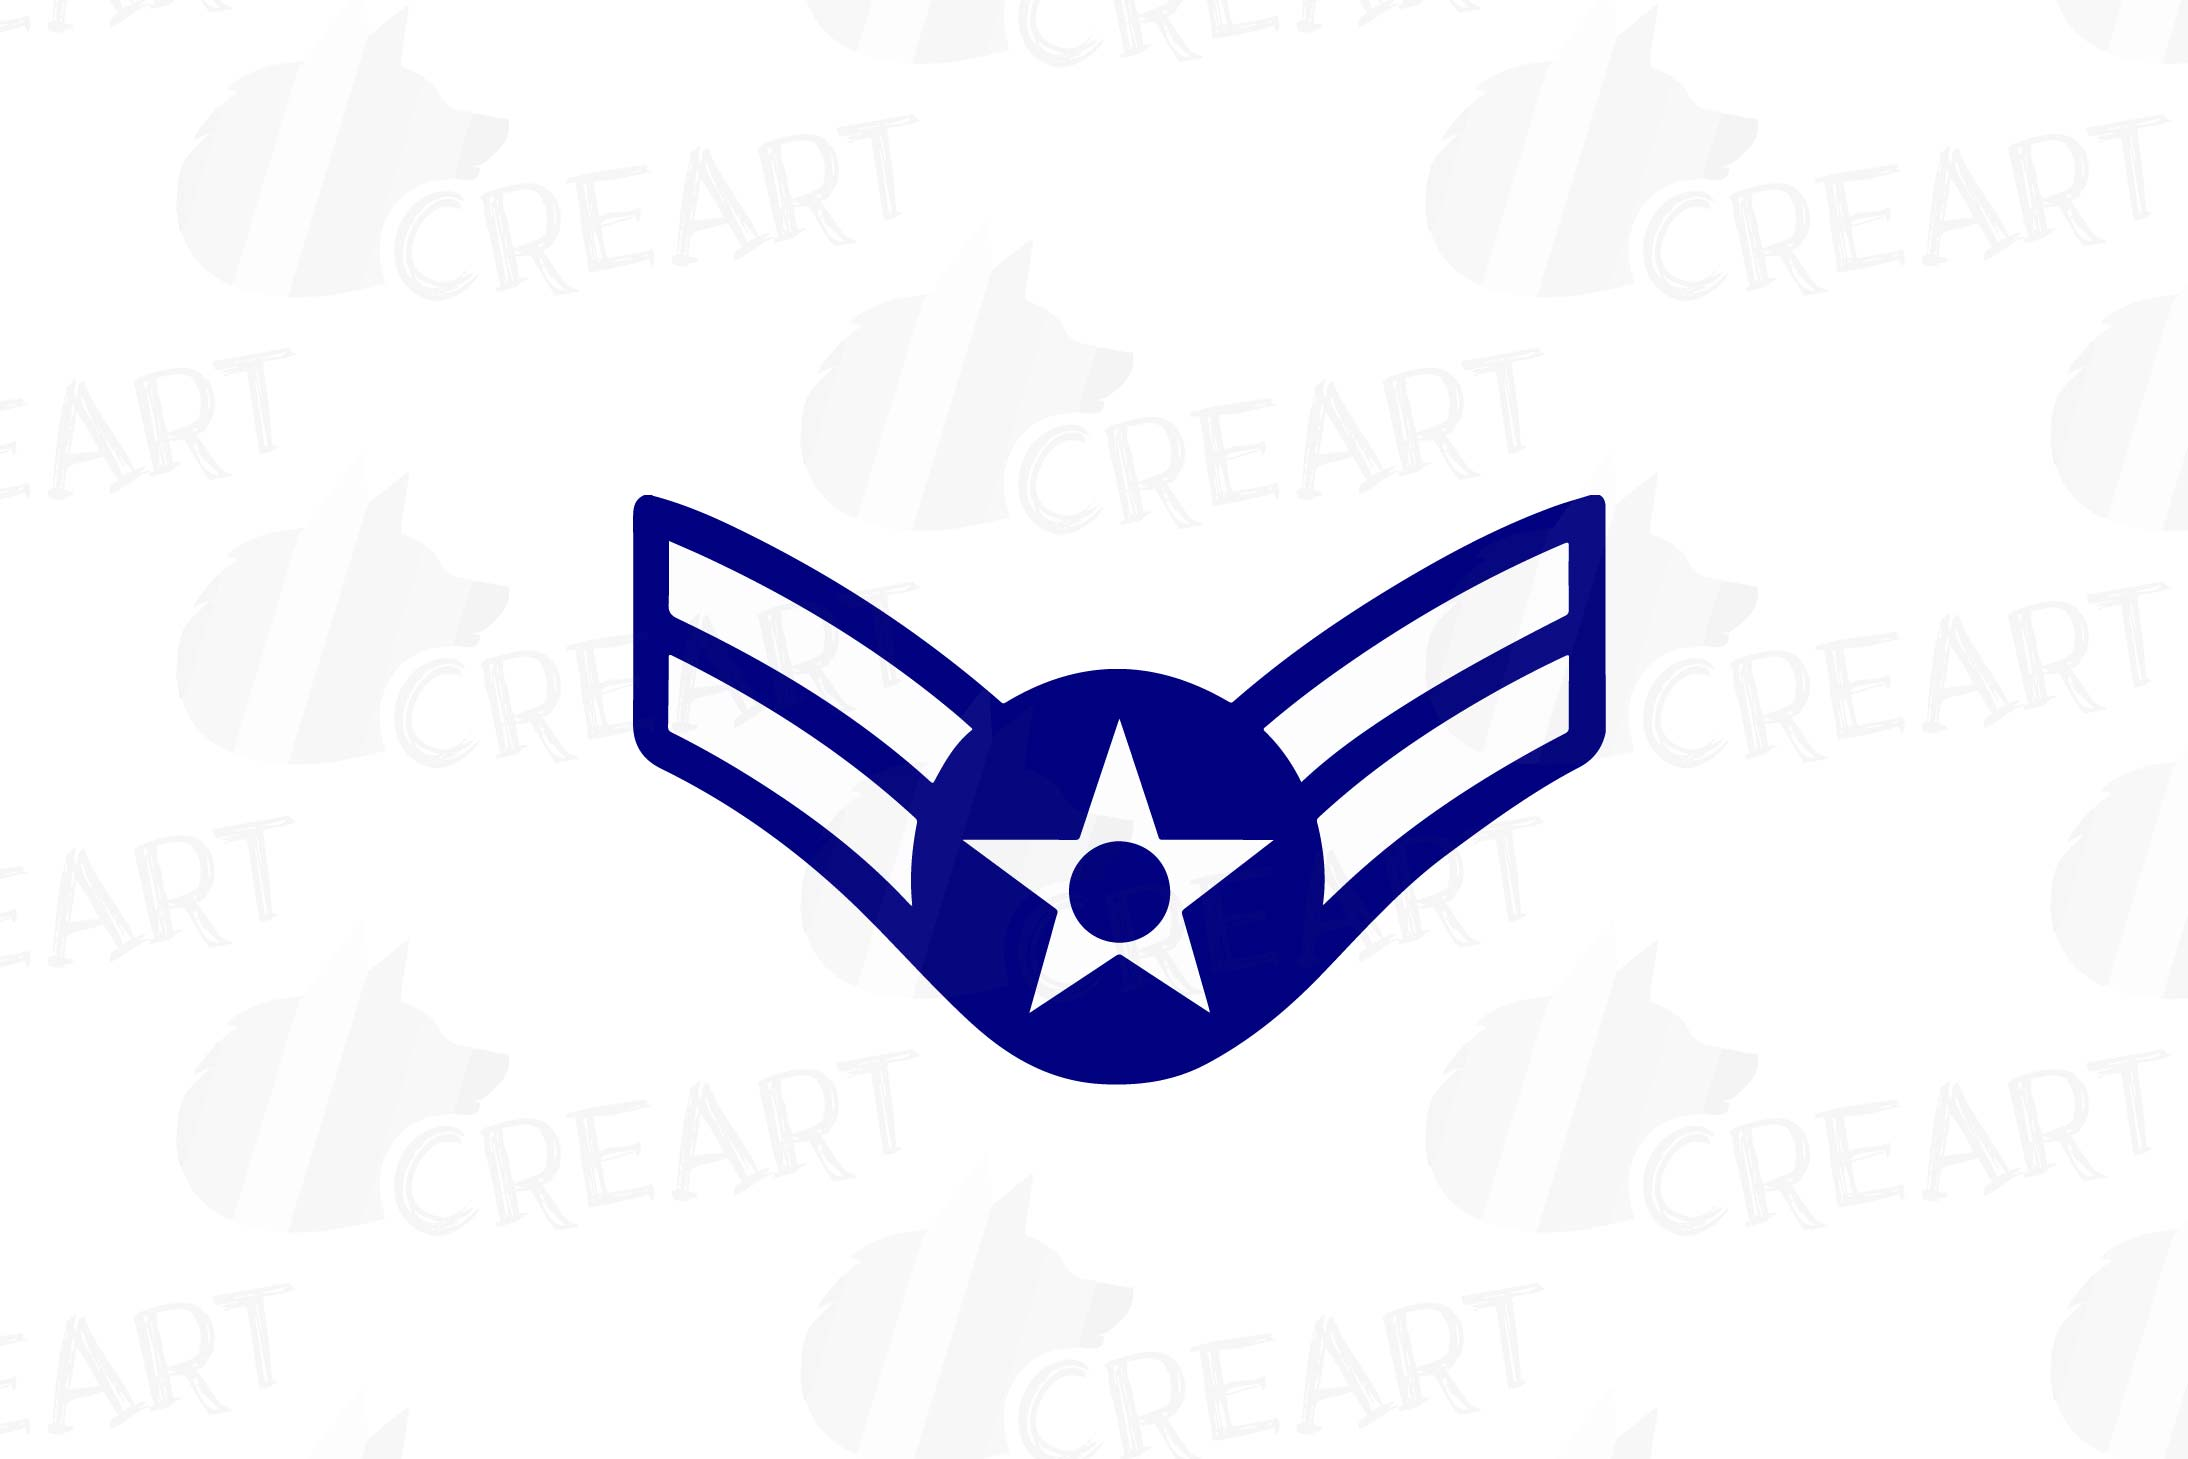 Air force ranks clipart banner transparent download US Air Force enlisted rank insignia collection, US AF vector banner transparent download